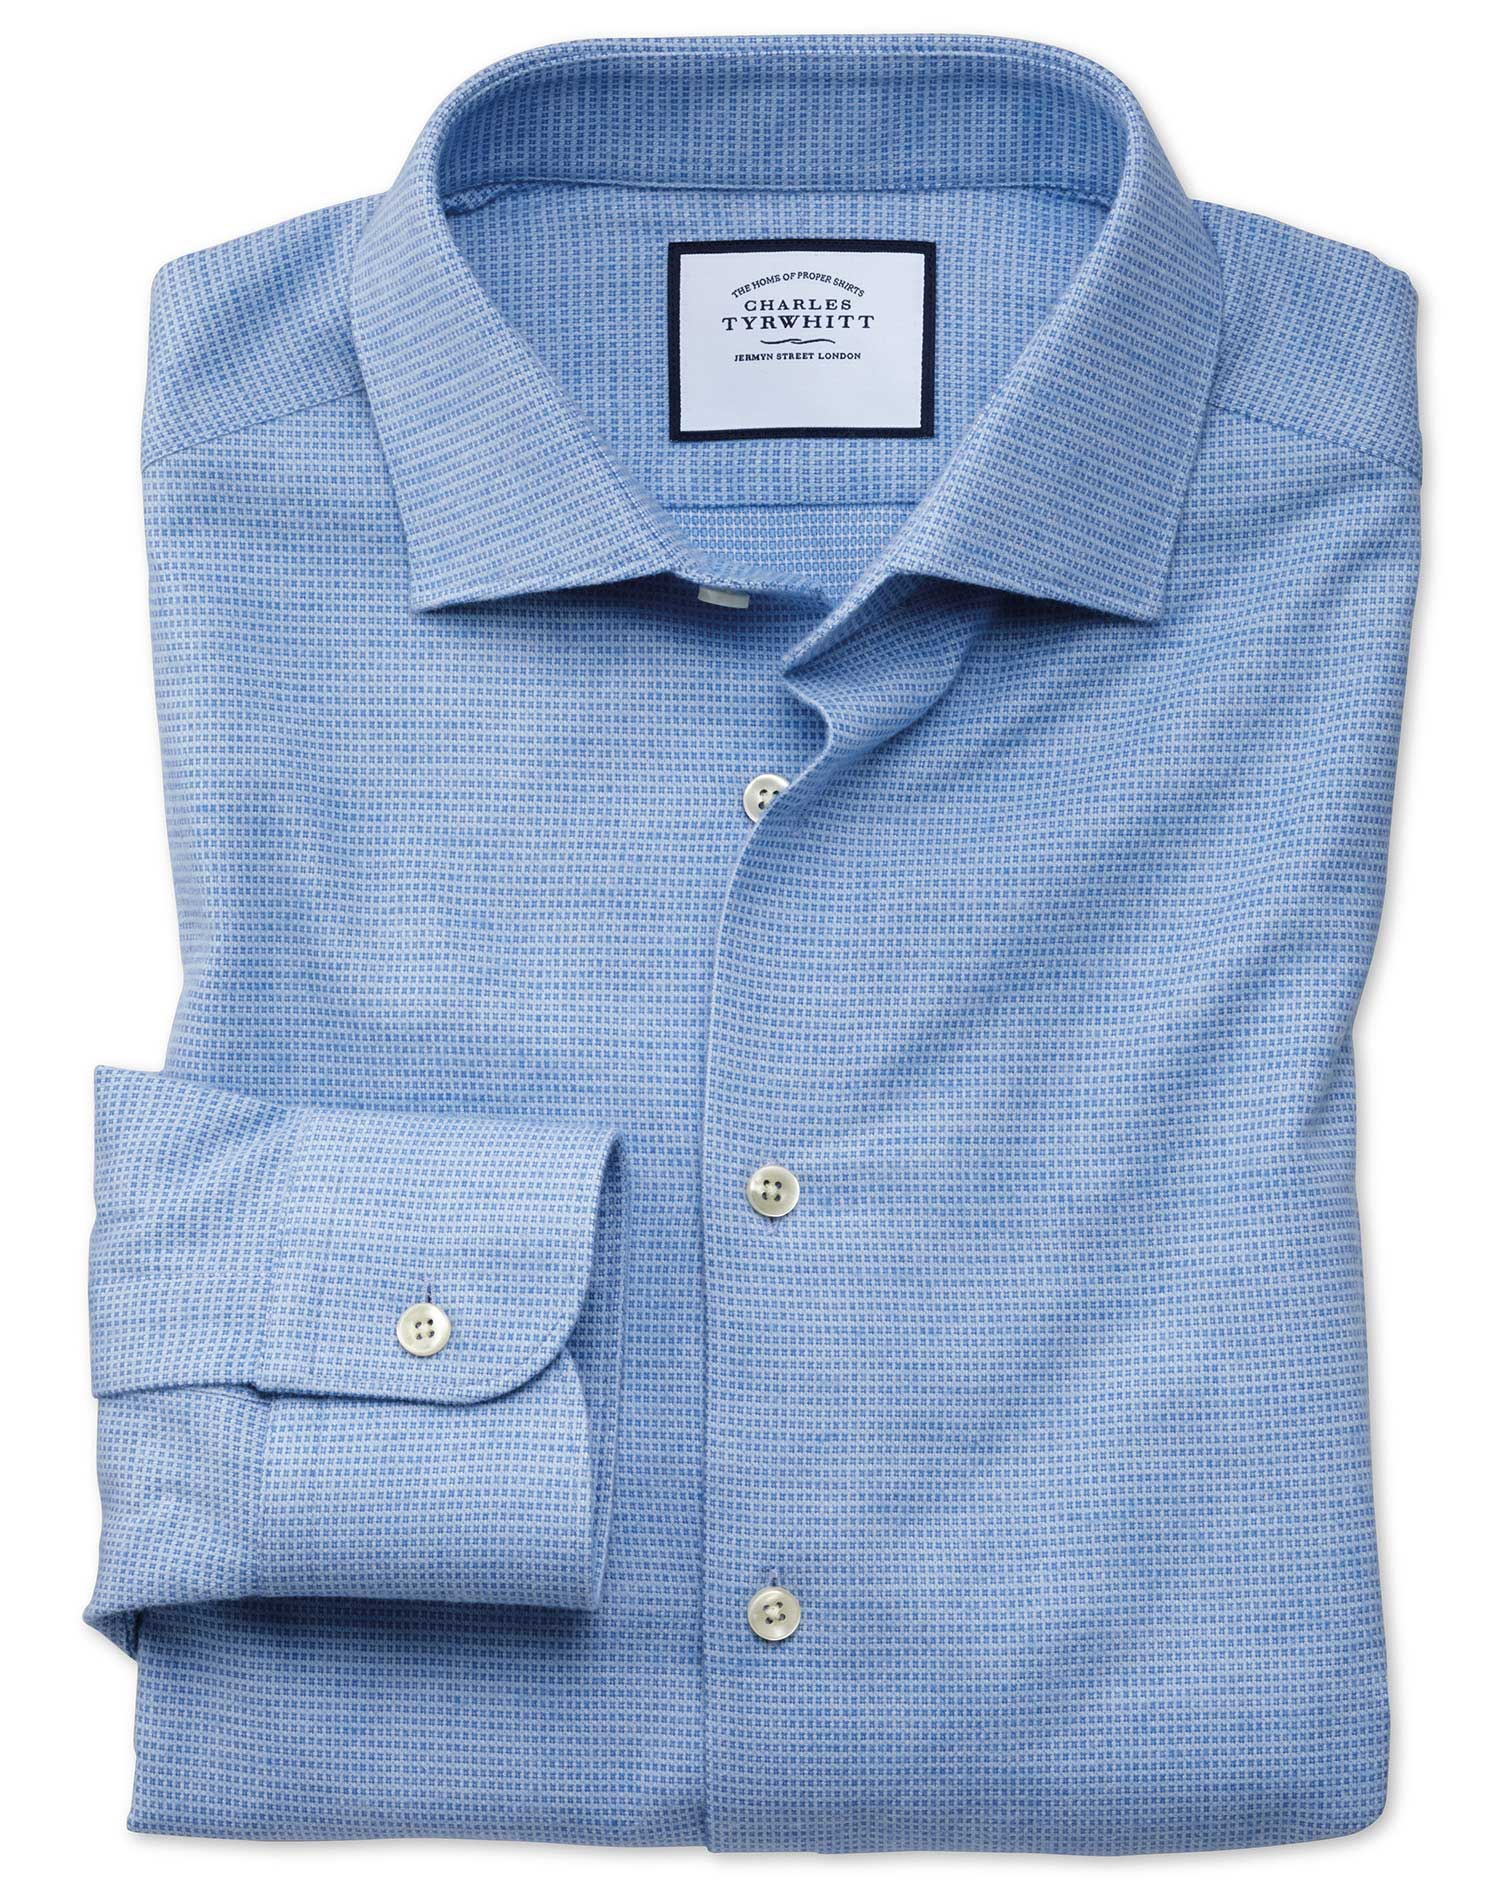 Slim Fit Business Casual Sky Blue Square Pattern Soft Cotton Formal Shirt Single Cuff Size 15.5/34 b